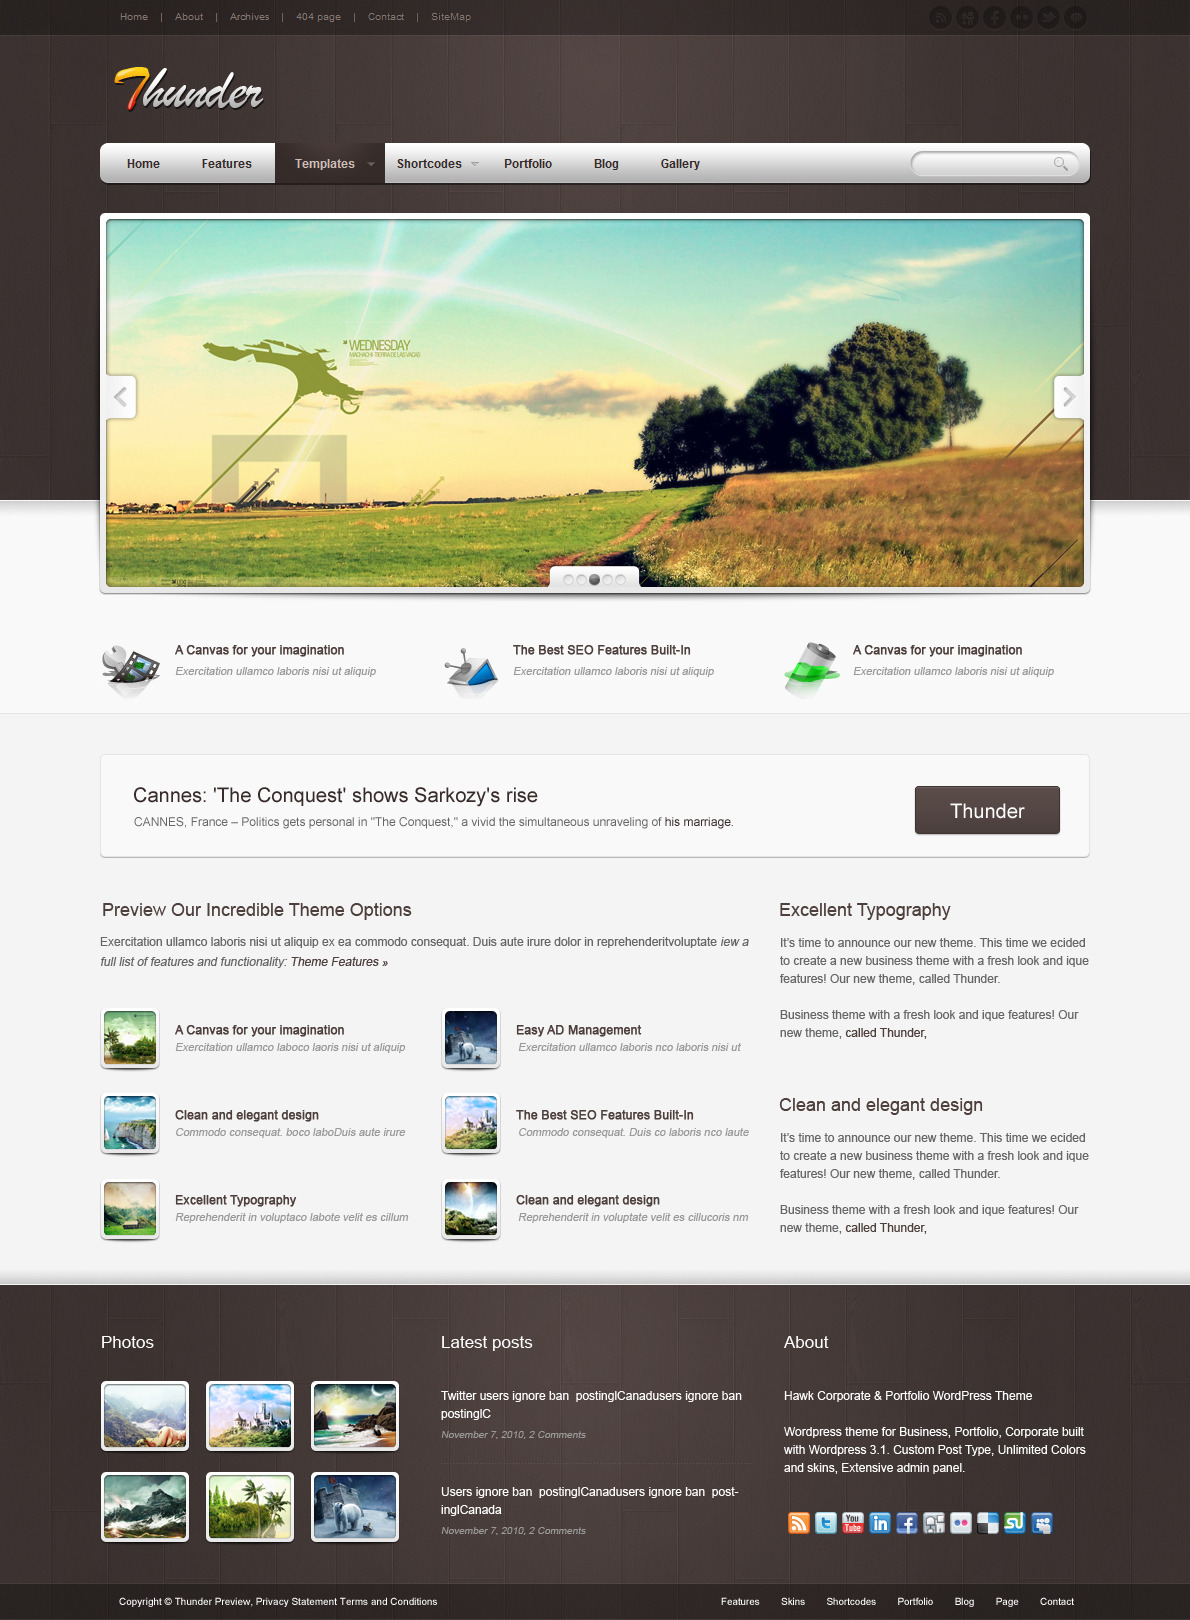 Thunder Corporate & Portfolio WordPress Theme - The homepage template 5.